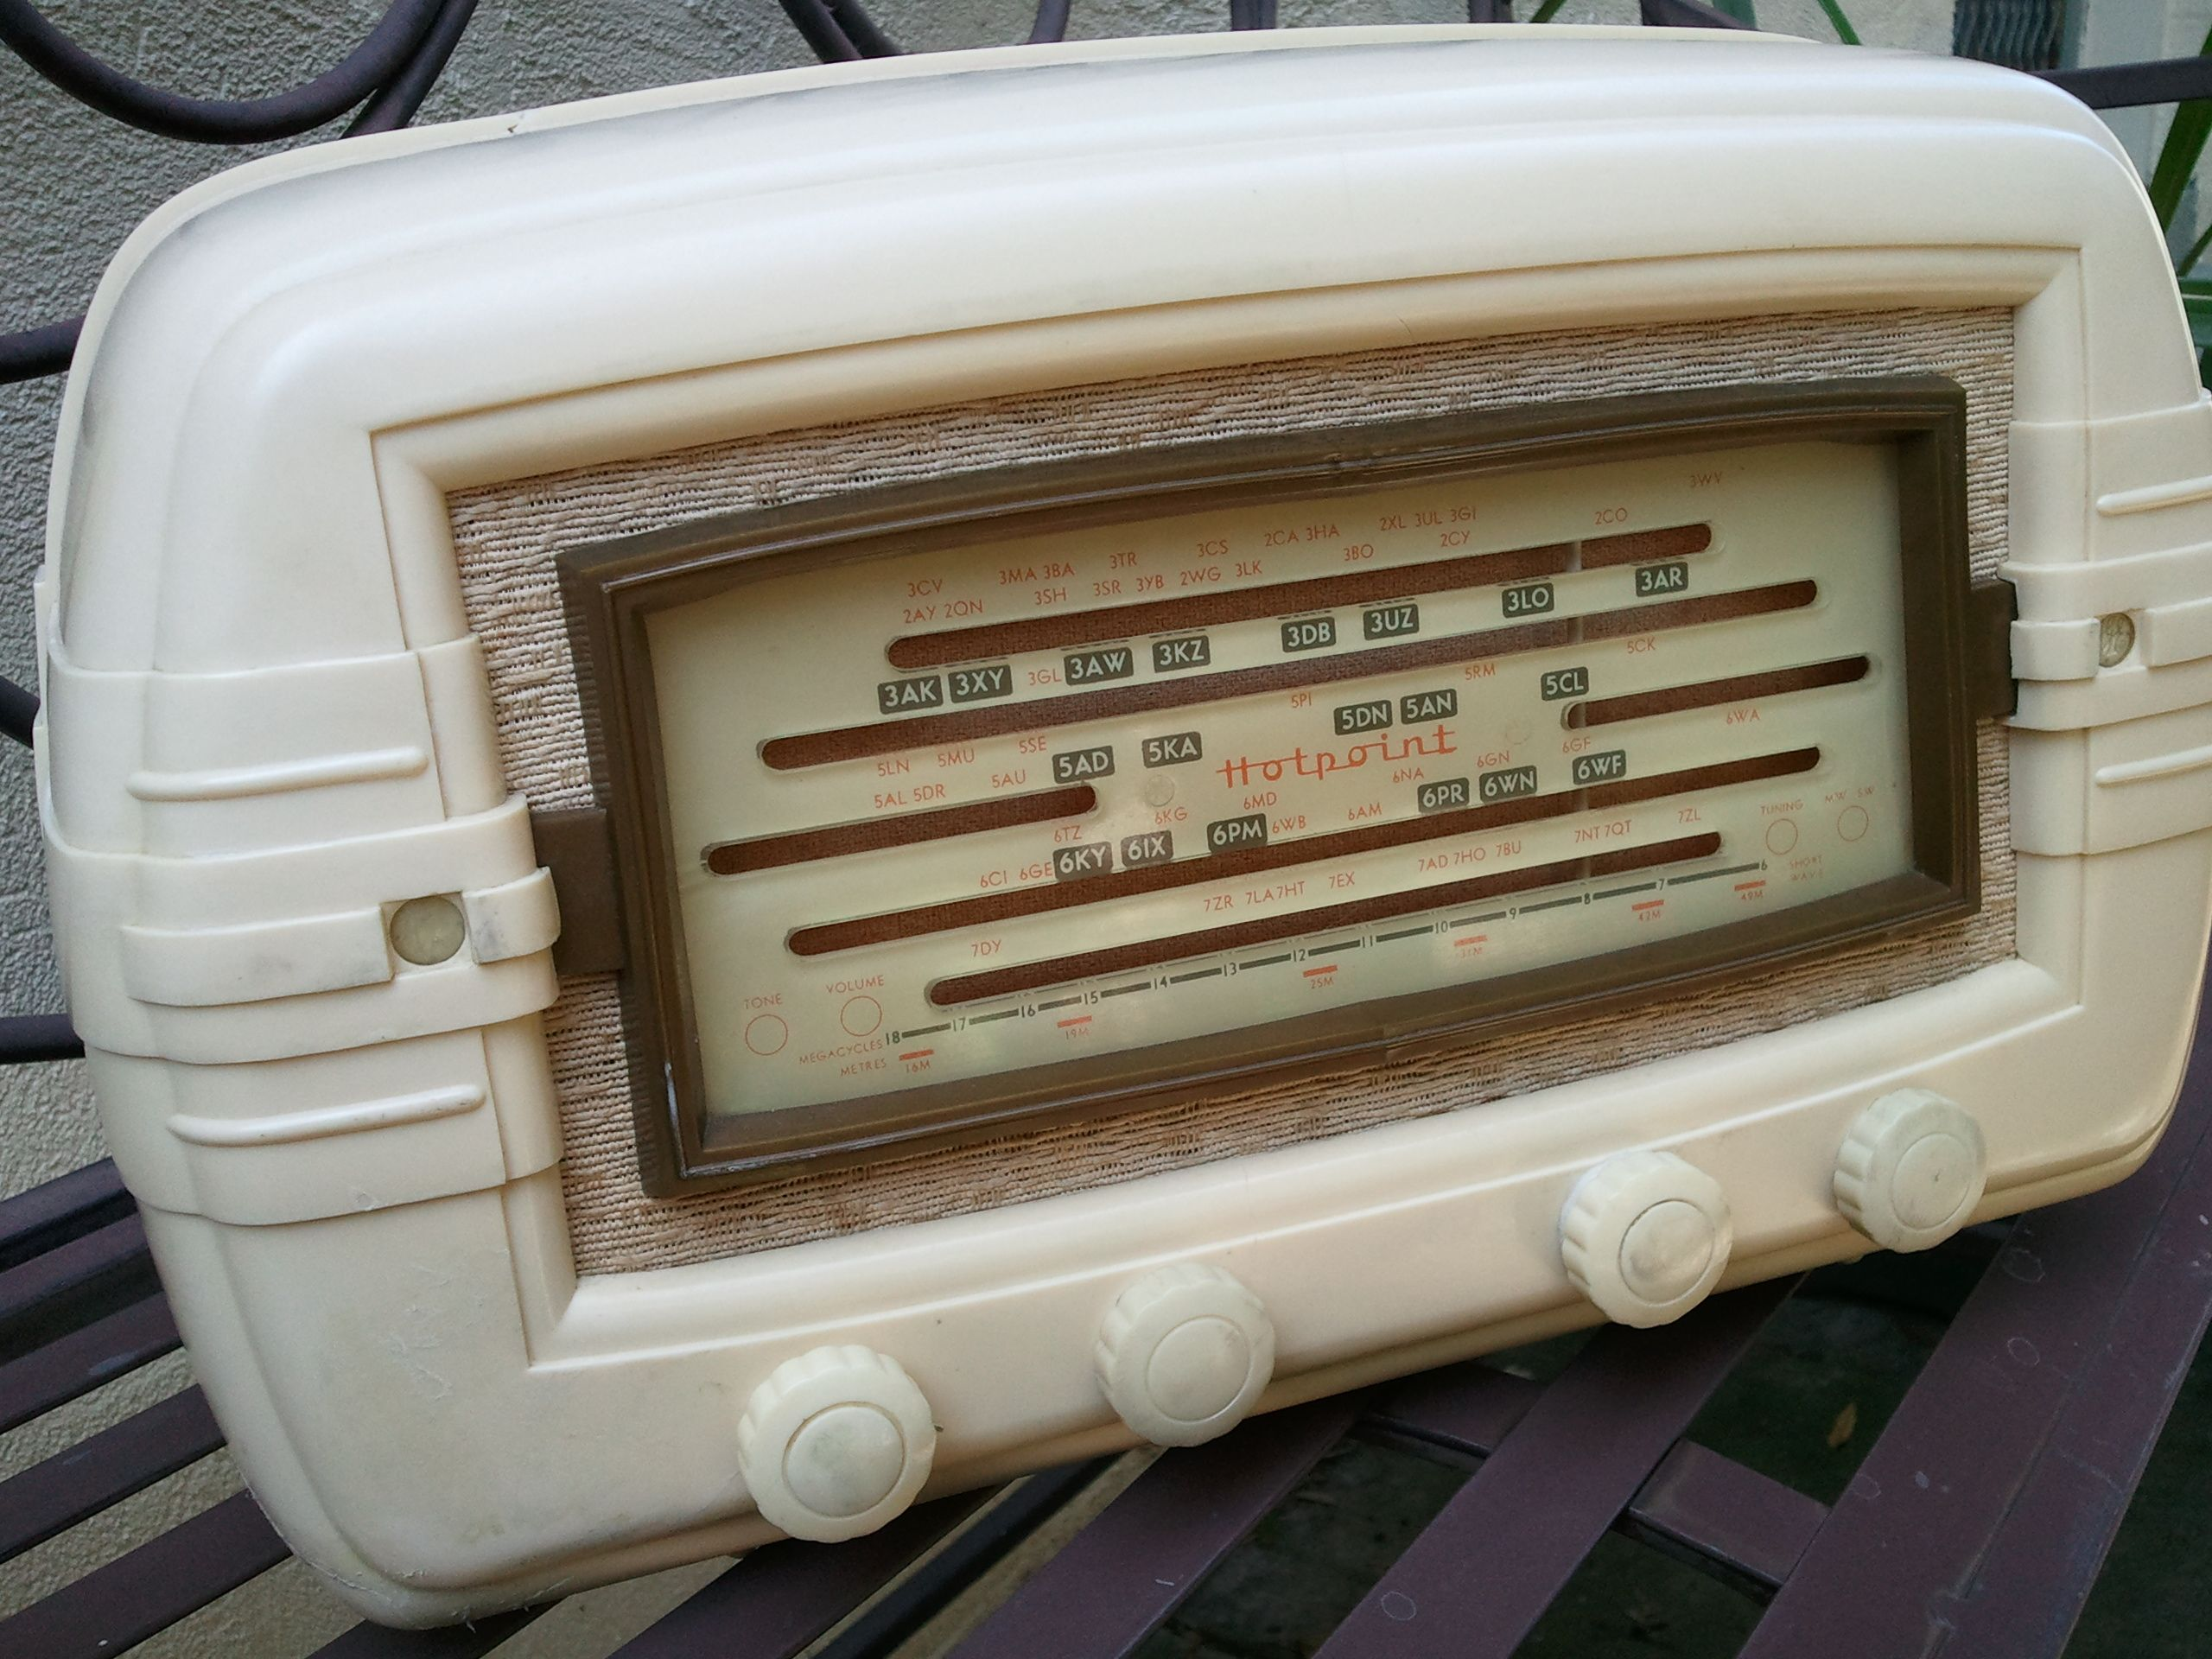 Hotpoint Model M65DE: This radio was manufactured by Australian General Electric, Sydney in 1952. It has both BC and SW Wave bands and has 5 Tubes: 6BE6 6BA6 6AV6 6AQ5 6X4. The model's casing seems to be subject to warping/cracking from age and stresses placed on it. This particular radio has a few cracks and missing bits filled with epoxy resin painted cream. Surprisingly, its knobs are still intact. The chassis is in good condition and the radio really performs well!